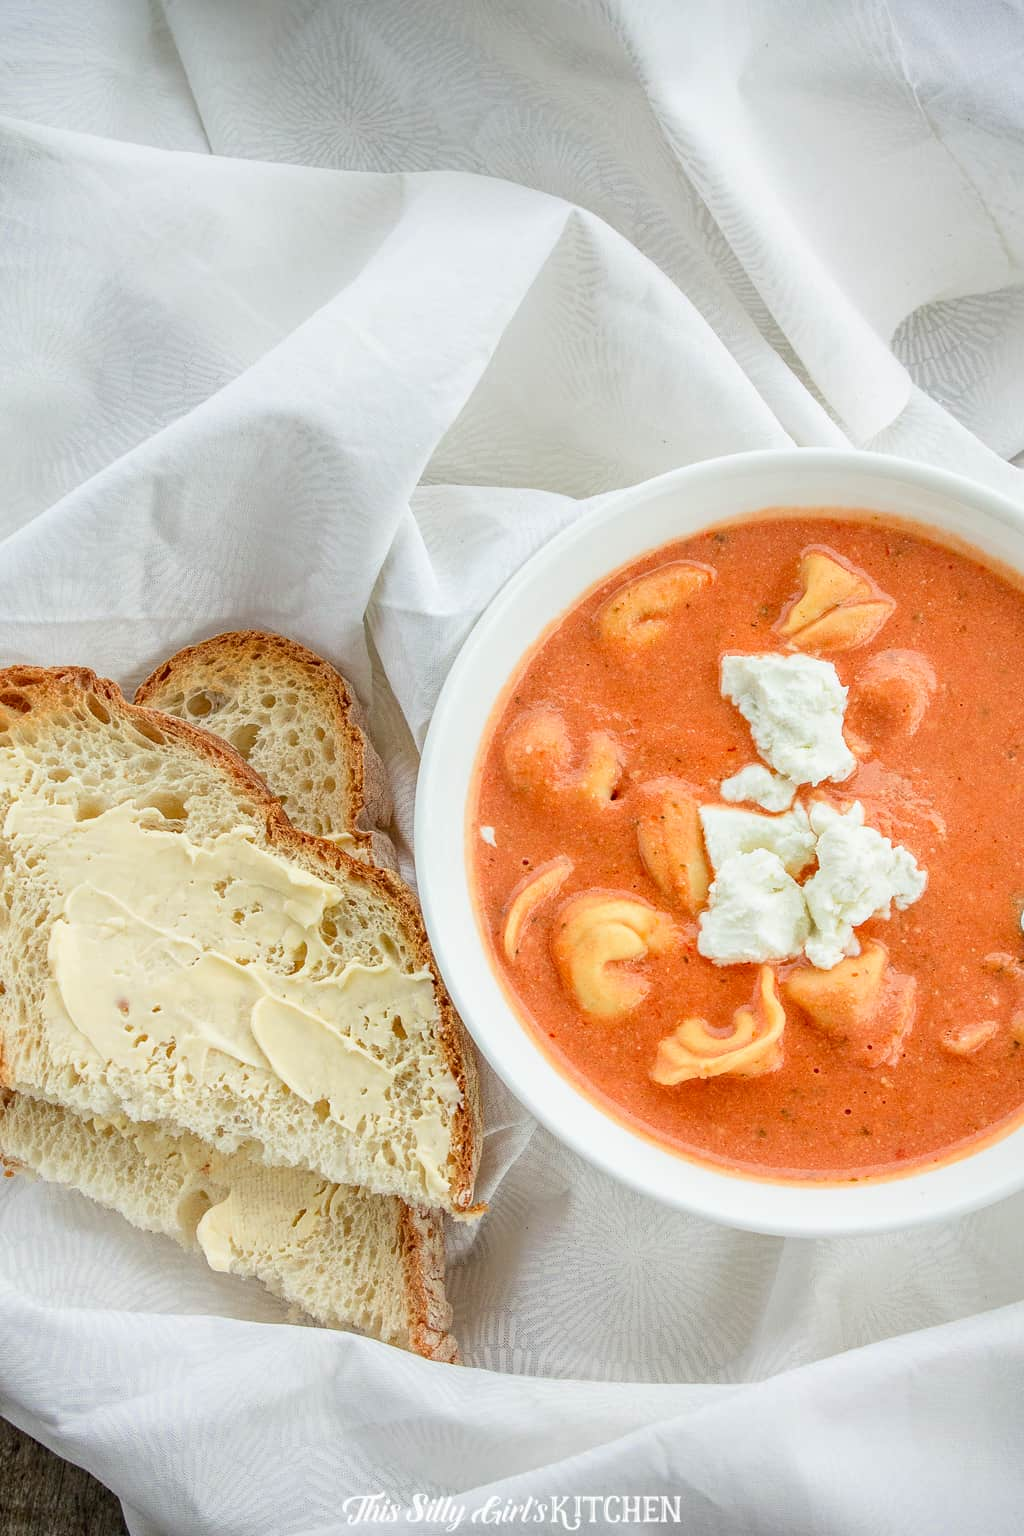 Made with tortellini and goat cheese, this is by far the best tomato soup recipe! #recipe from thissillygirlskitchen.com #slowcooker #crockpot #tomatosoup #soup #tortellinisoup #goatcheese